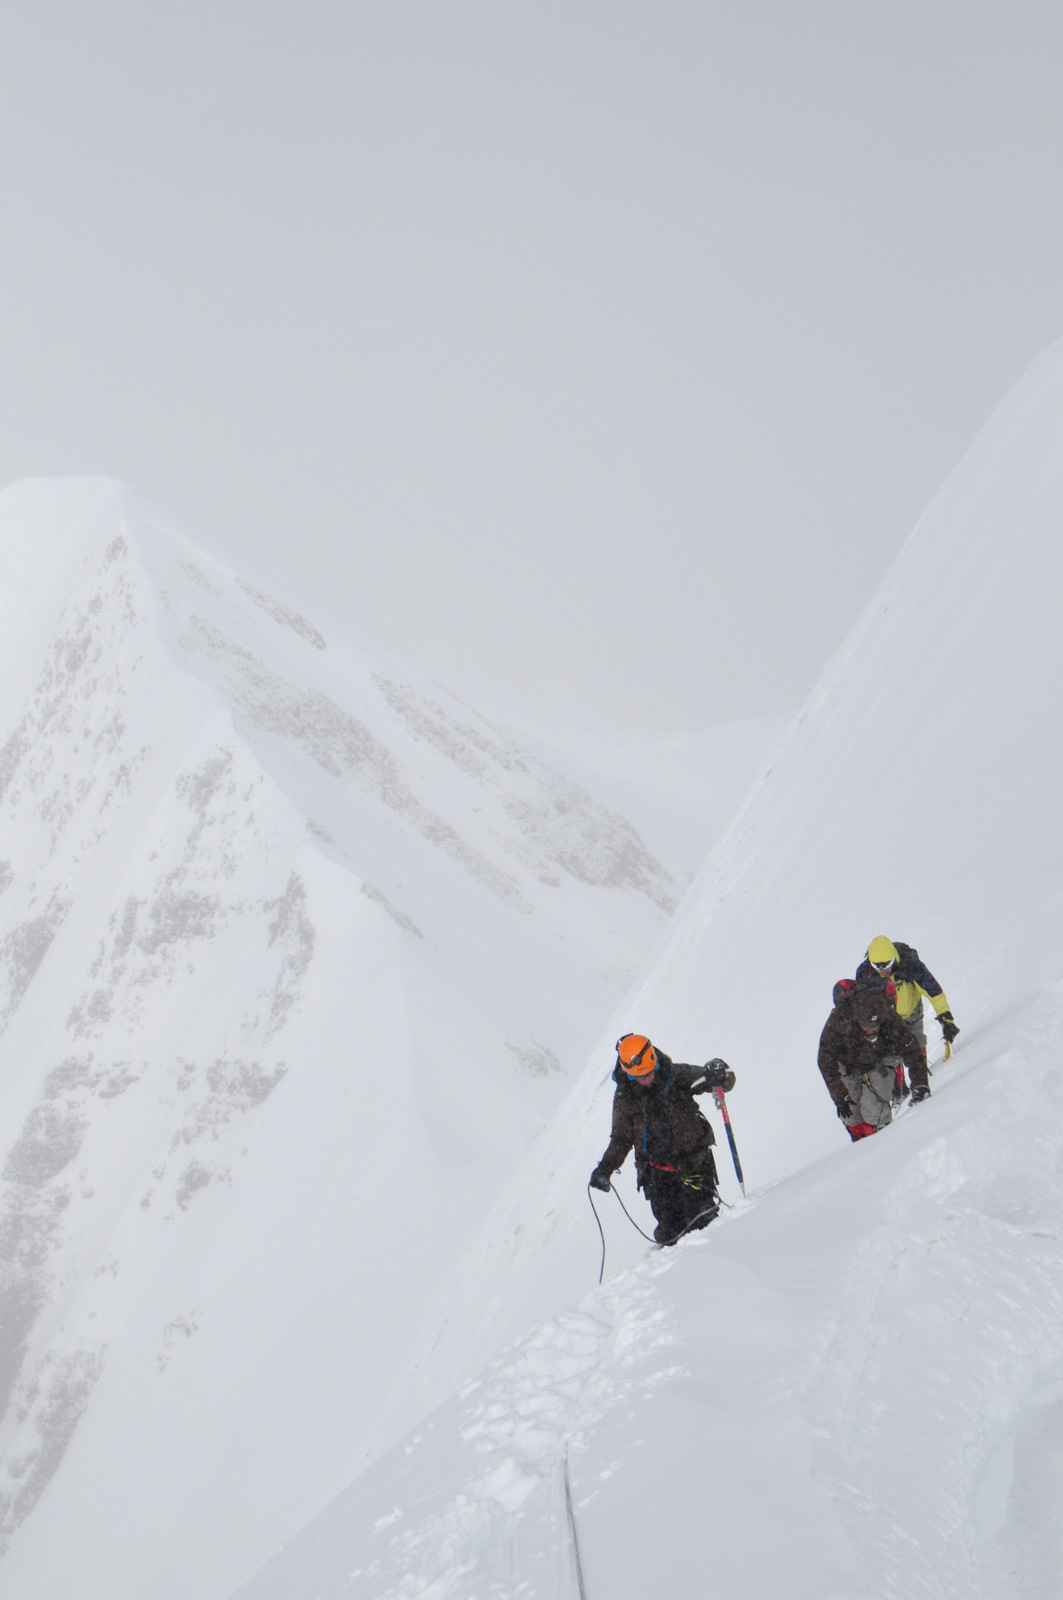 Summit in reach during a cloudy day